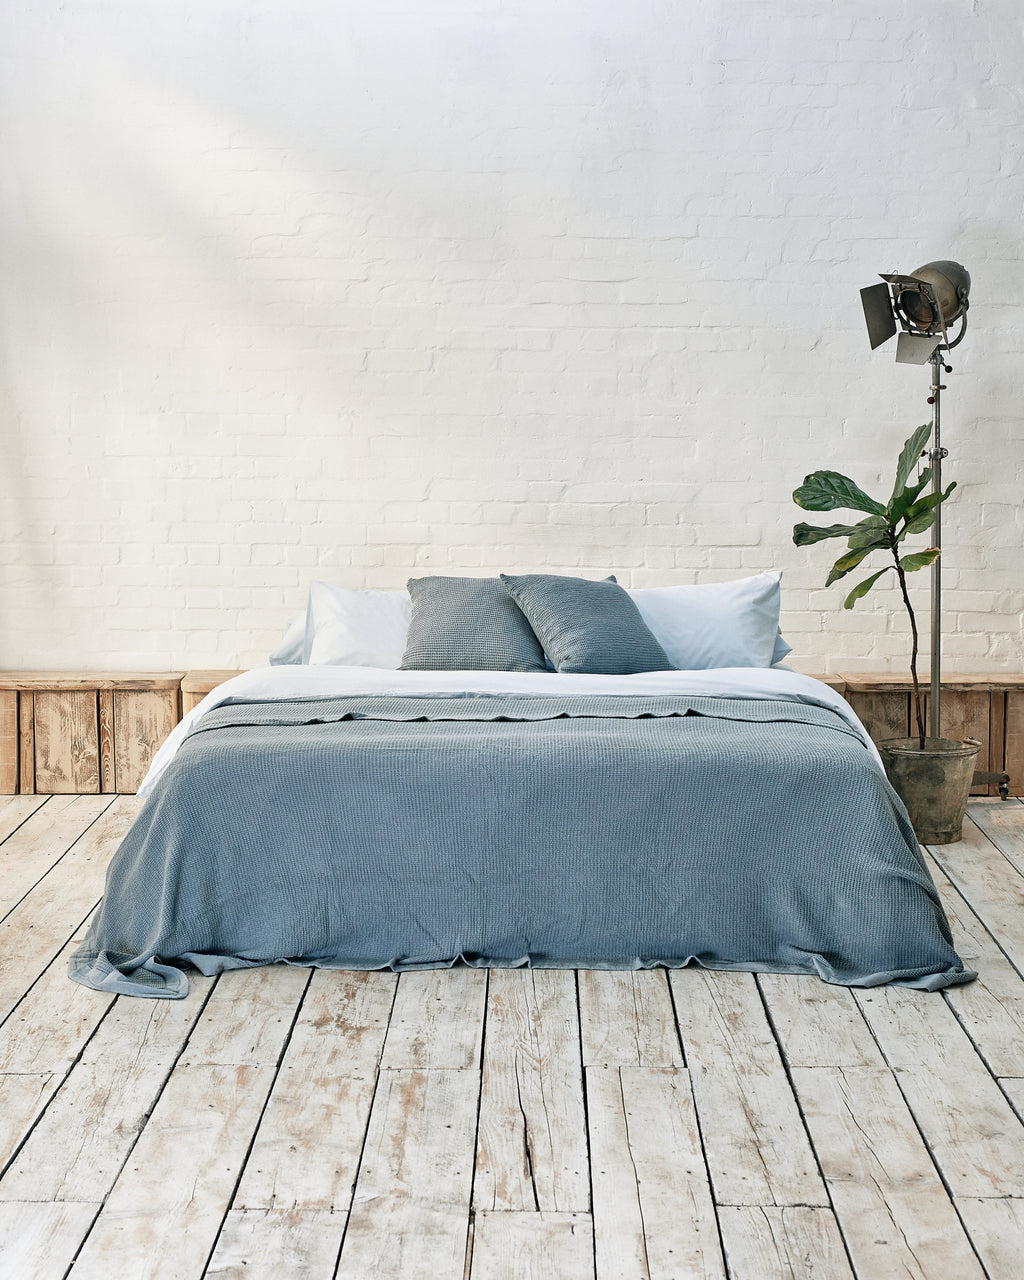 light blue bedding set with blue waffle bedspread and scatter cushions in an industrial bedroom